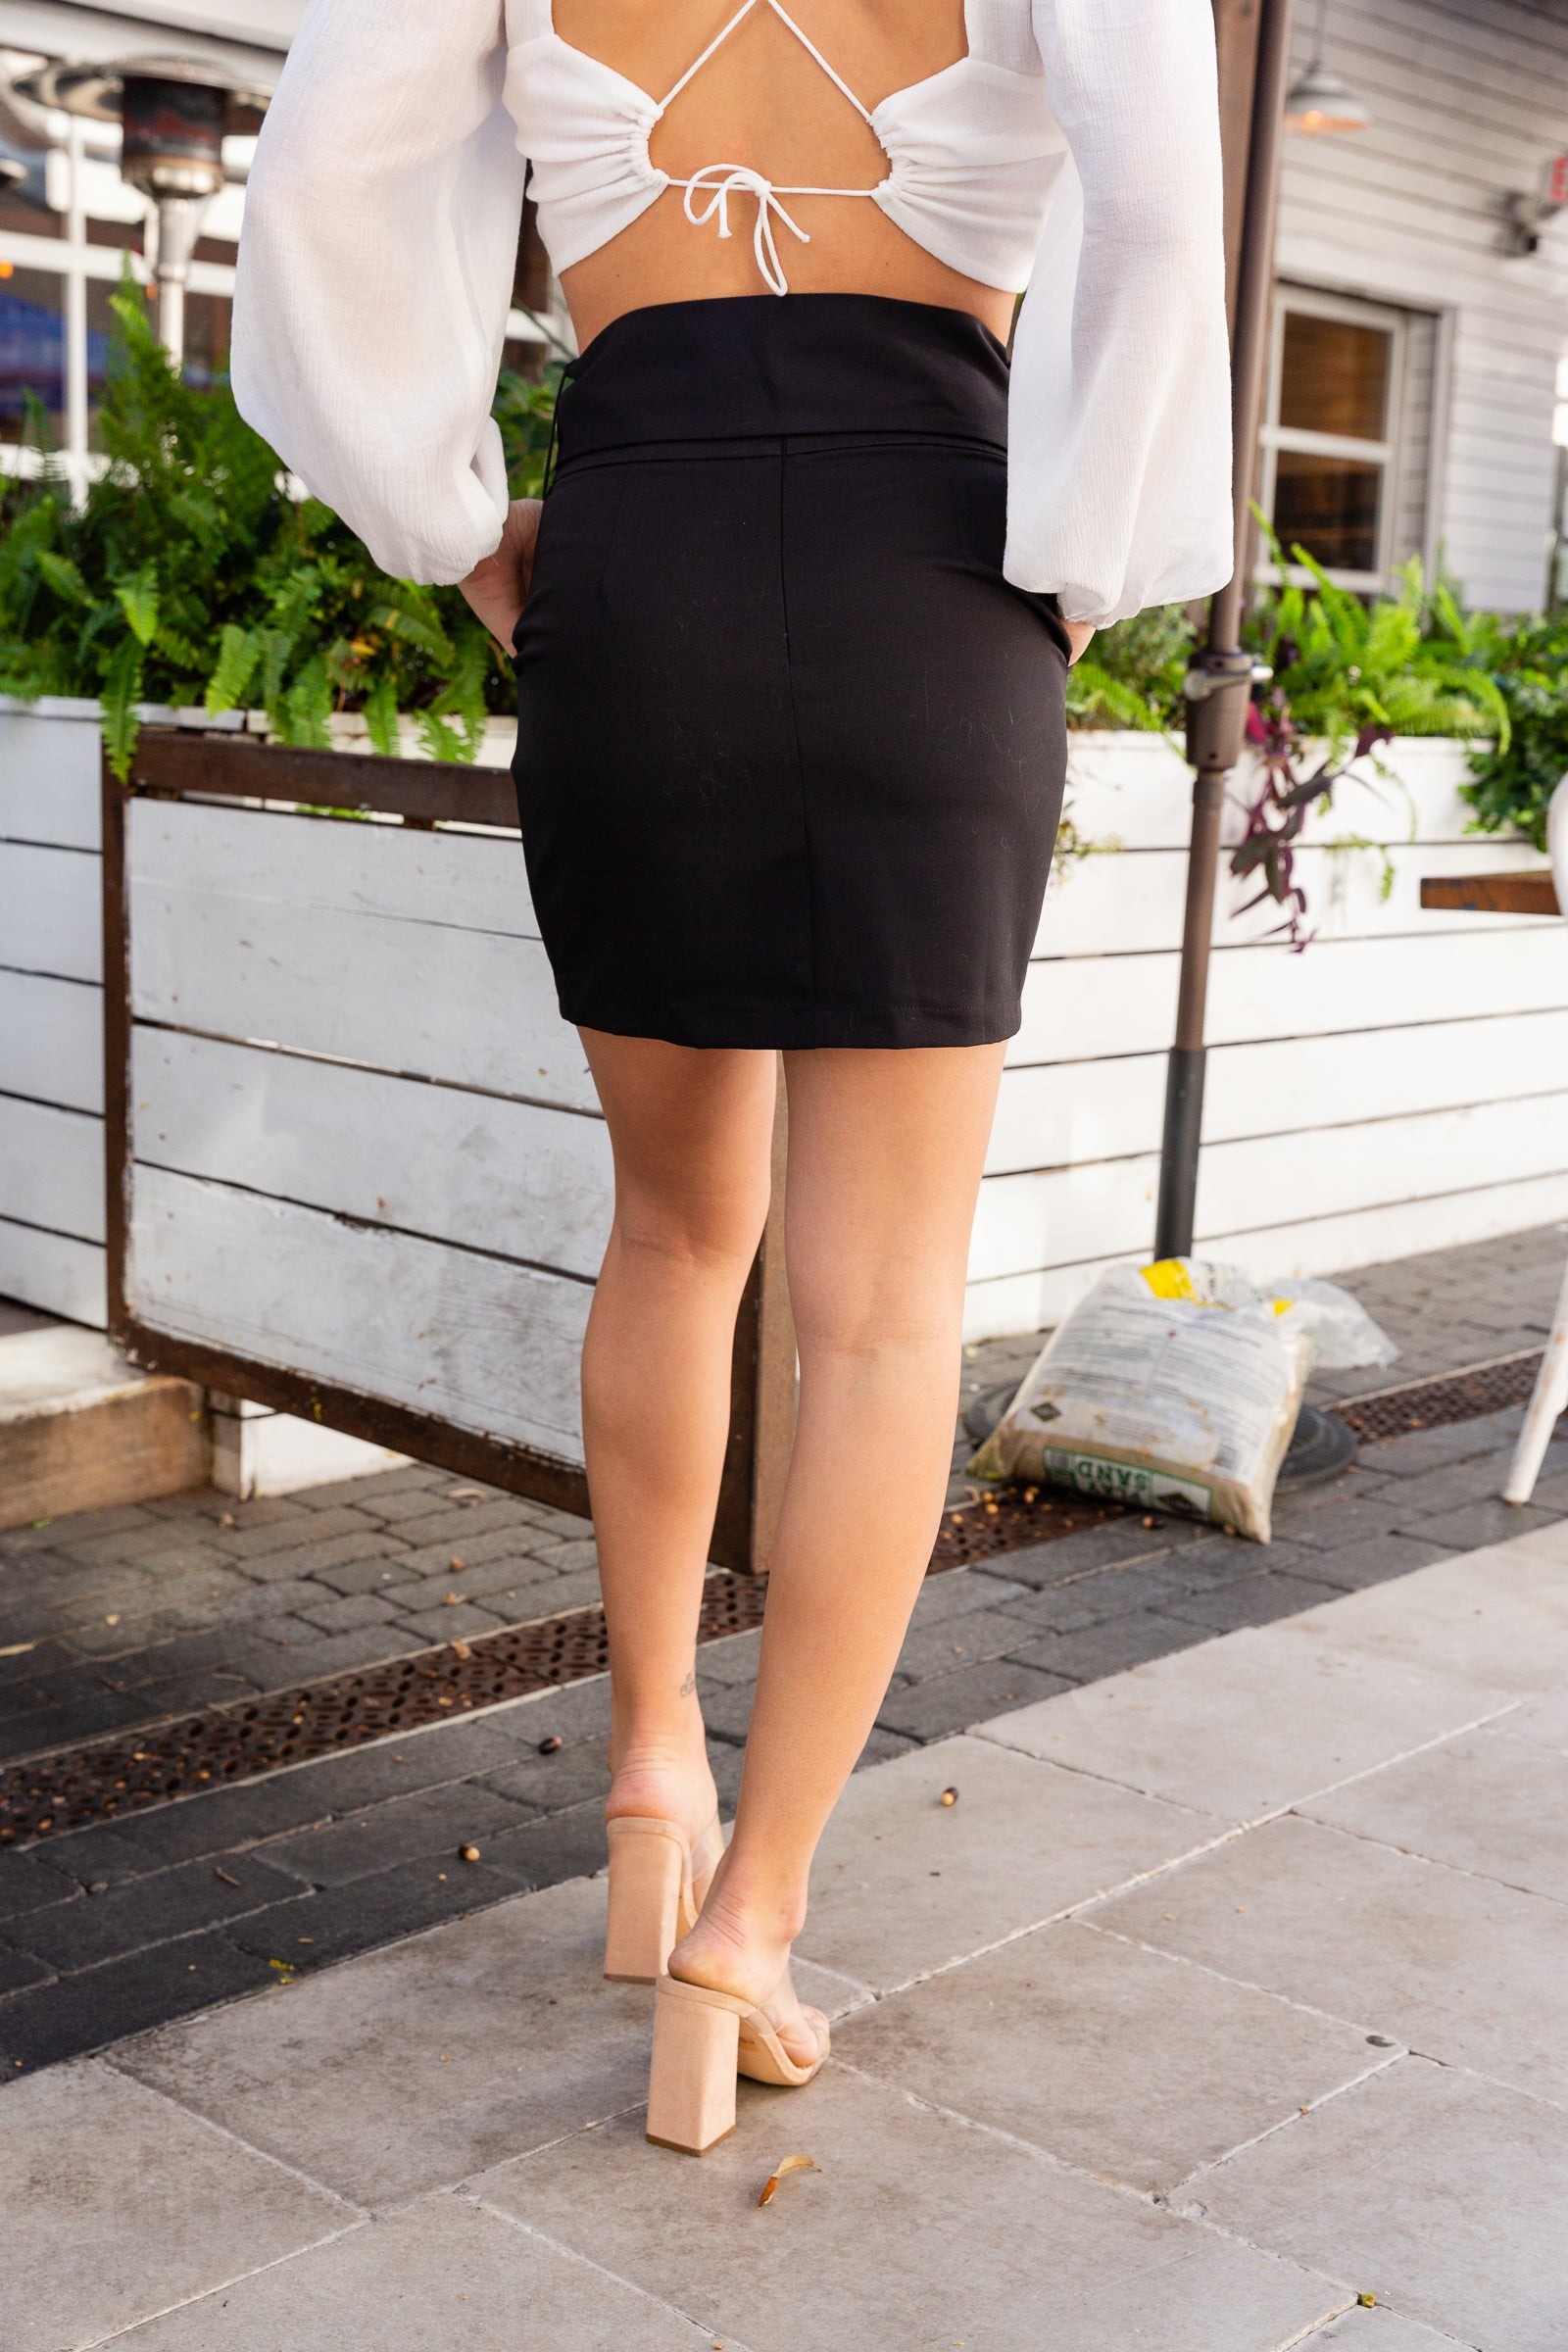 This black skirt has a fitted waistband with an attached fabric belt and rectangle buckle detail that leads to side pockets and goes into a mini-pencil silhouette.